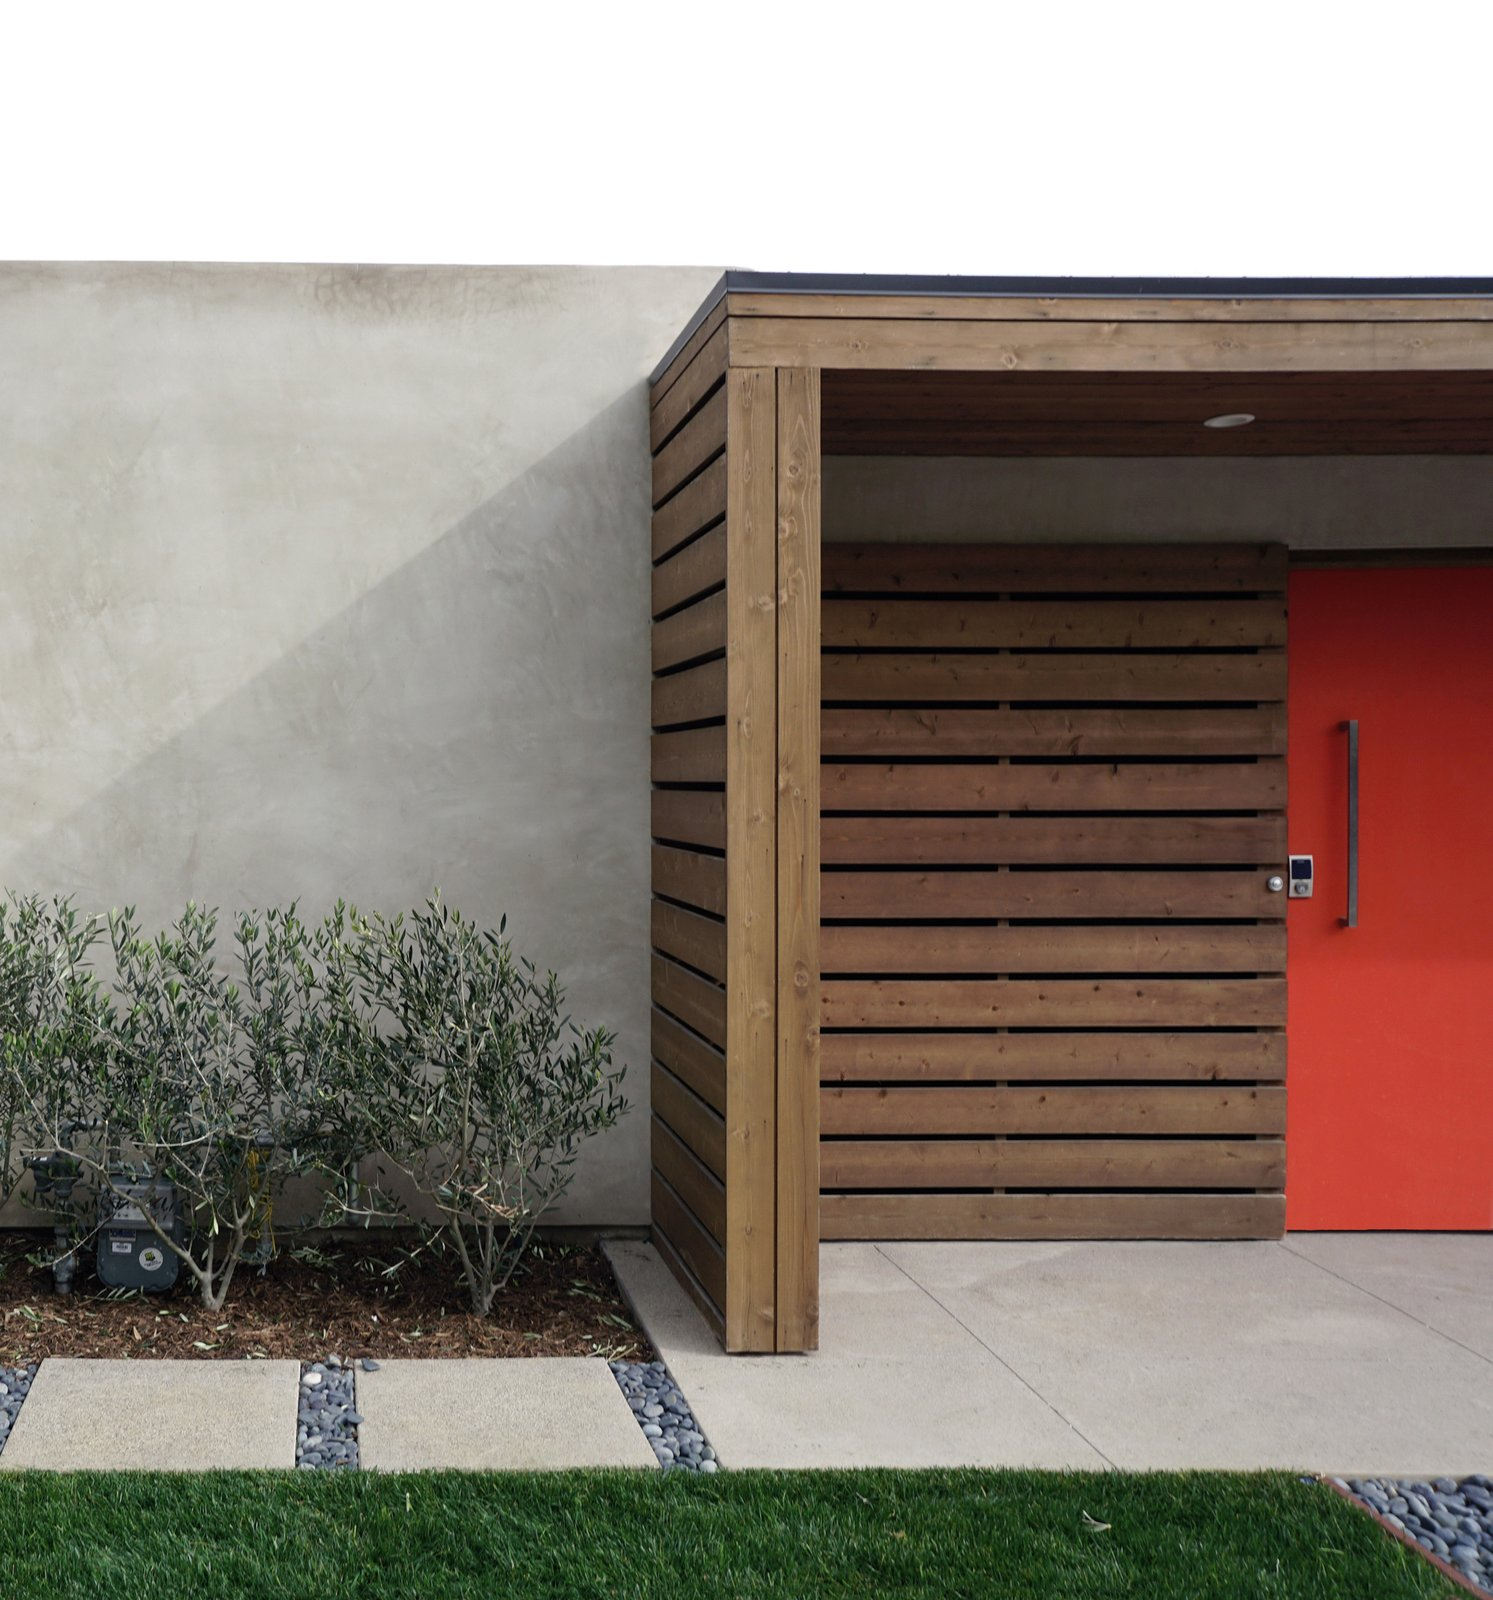 Exterior, Swing Door Type, Outdoor, Front Yard, Walkways, Hardscapes, Grass, Shrubs, Small Patio, Porch, Deck, Wood Patio, Porch, Deck, Concrete Patio, Porch, Deck, Horizontal Fences, Wall, and Wood Fences, Wall Concrete, grass, gravel and cedar at courtyard entry.  Laguna Niguel Mid-Century by MYD studio, inc.